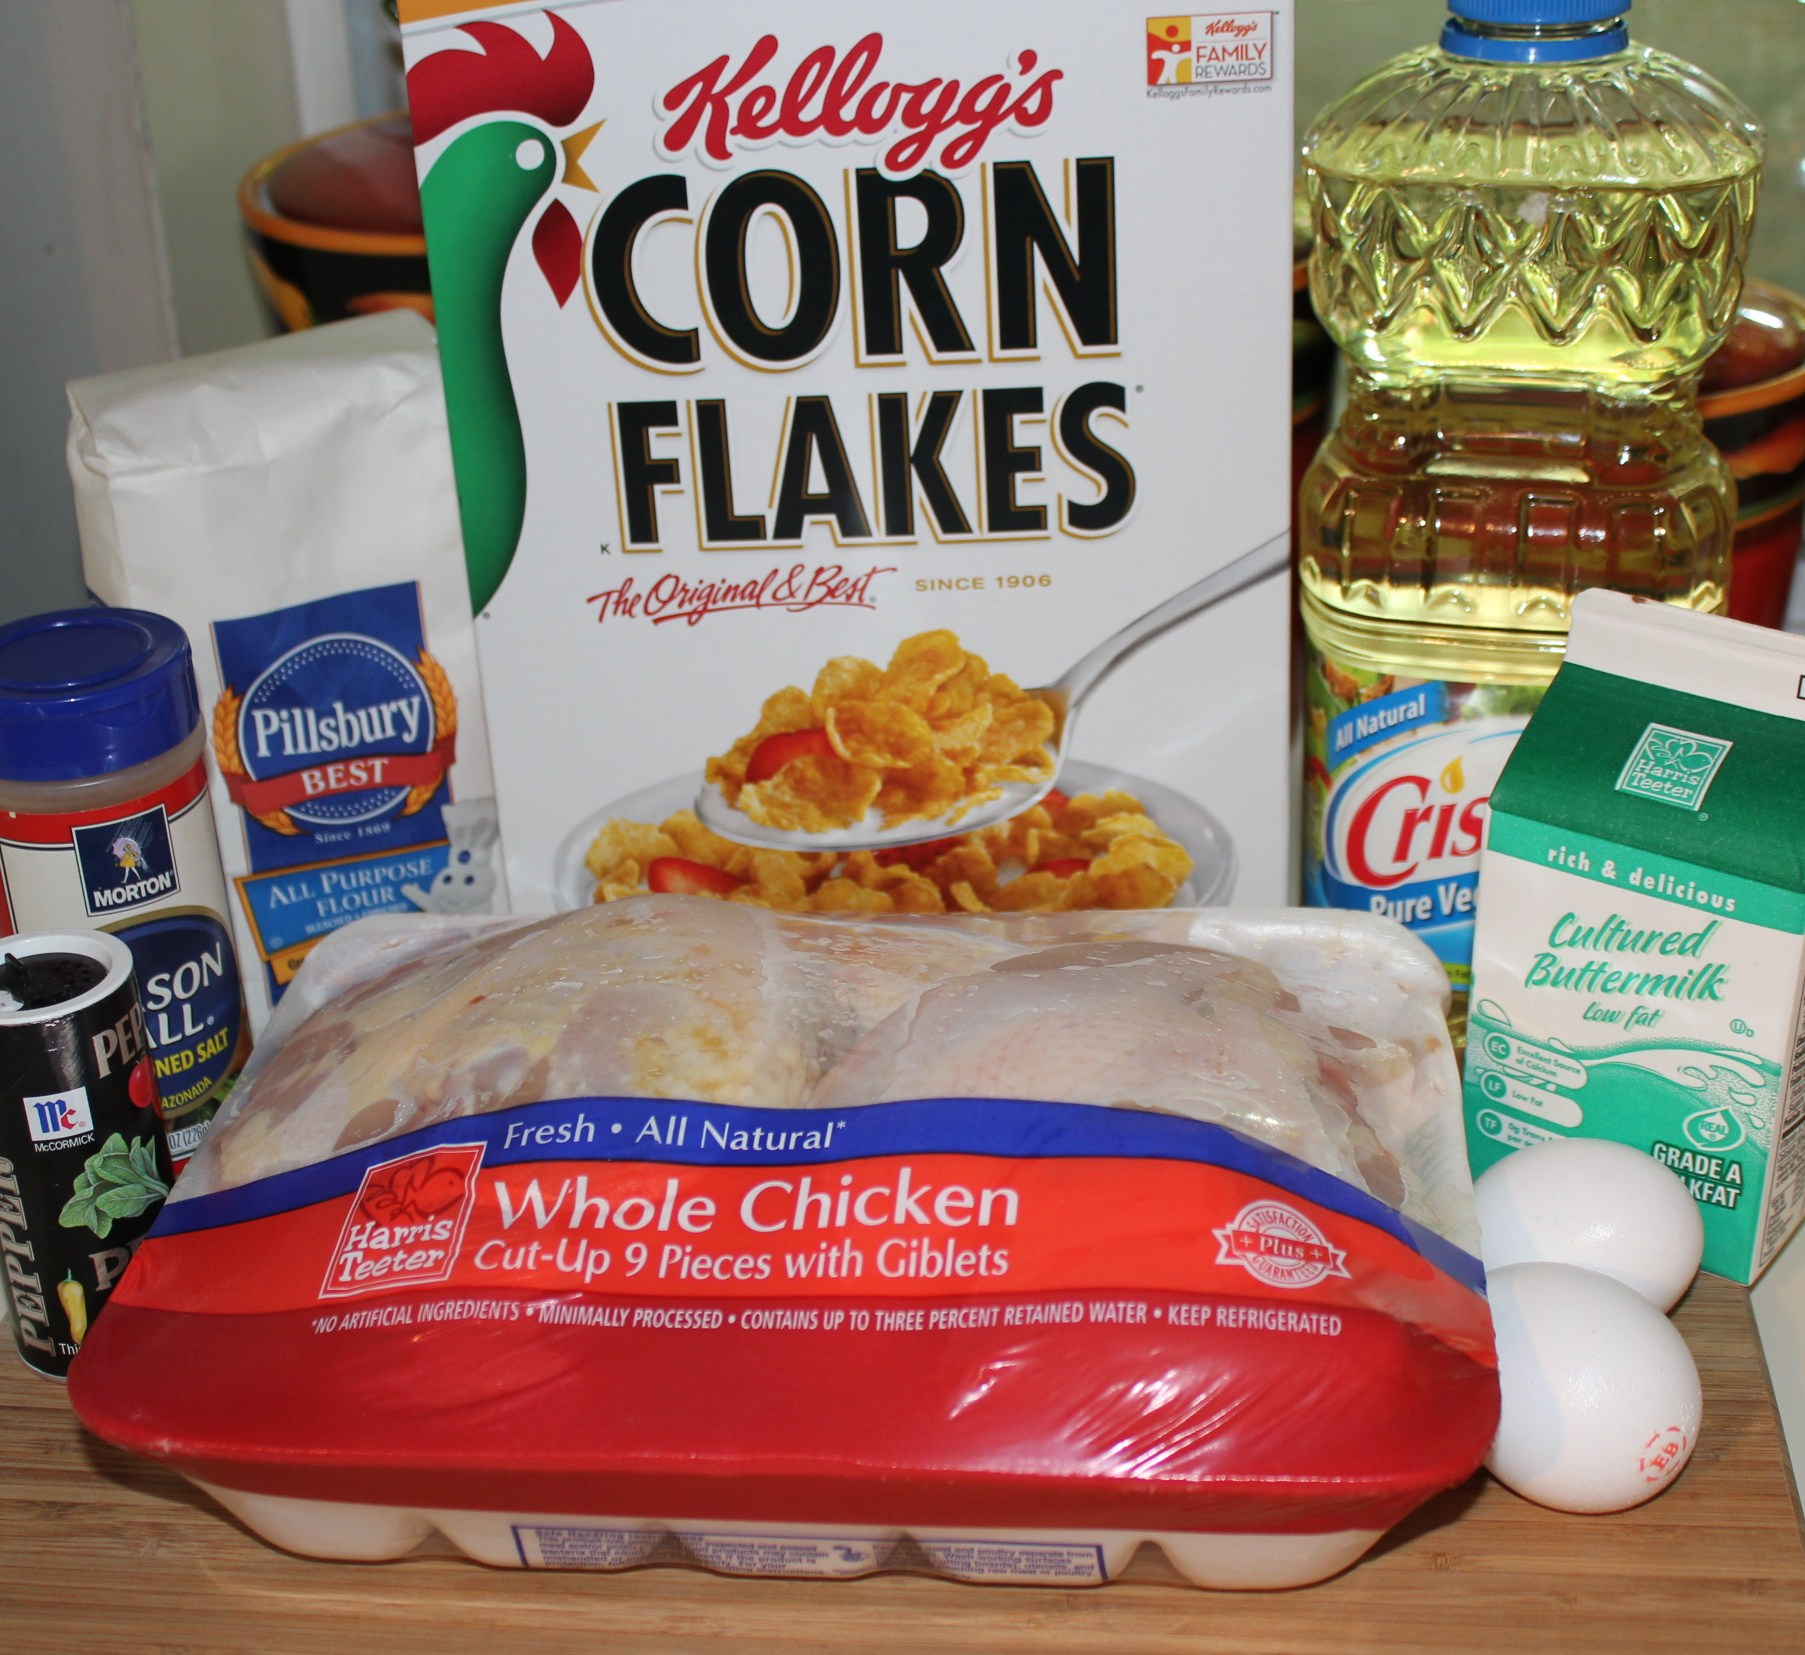 Kel's Crunchy Fried Chicken ingredients